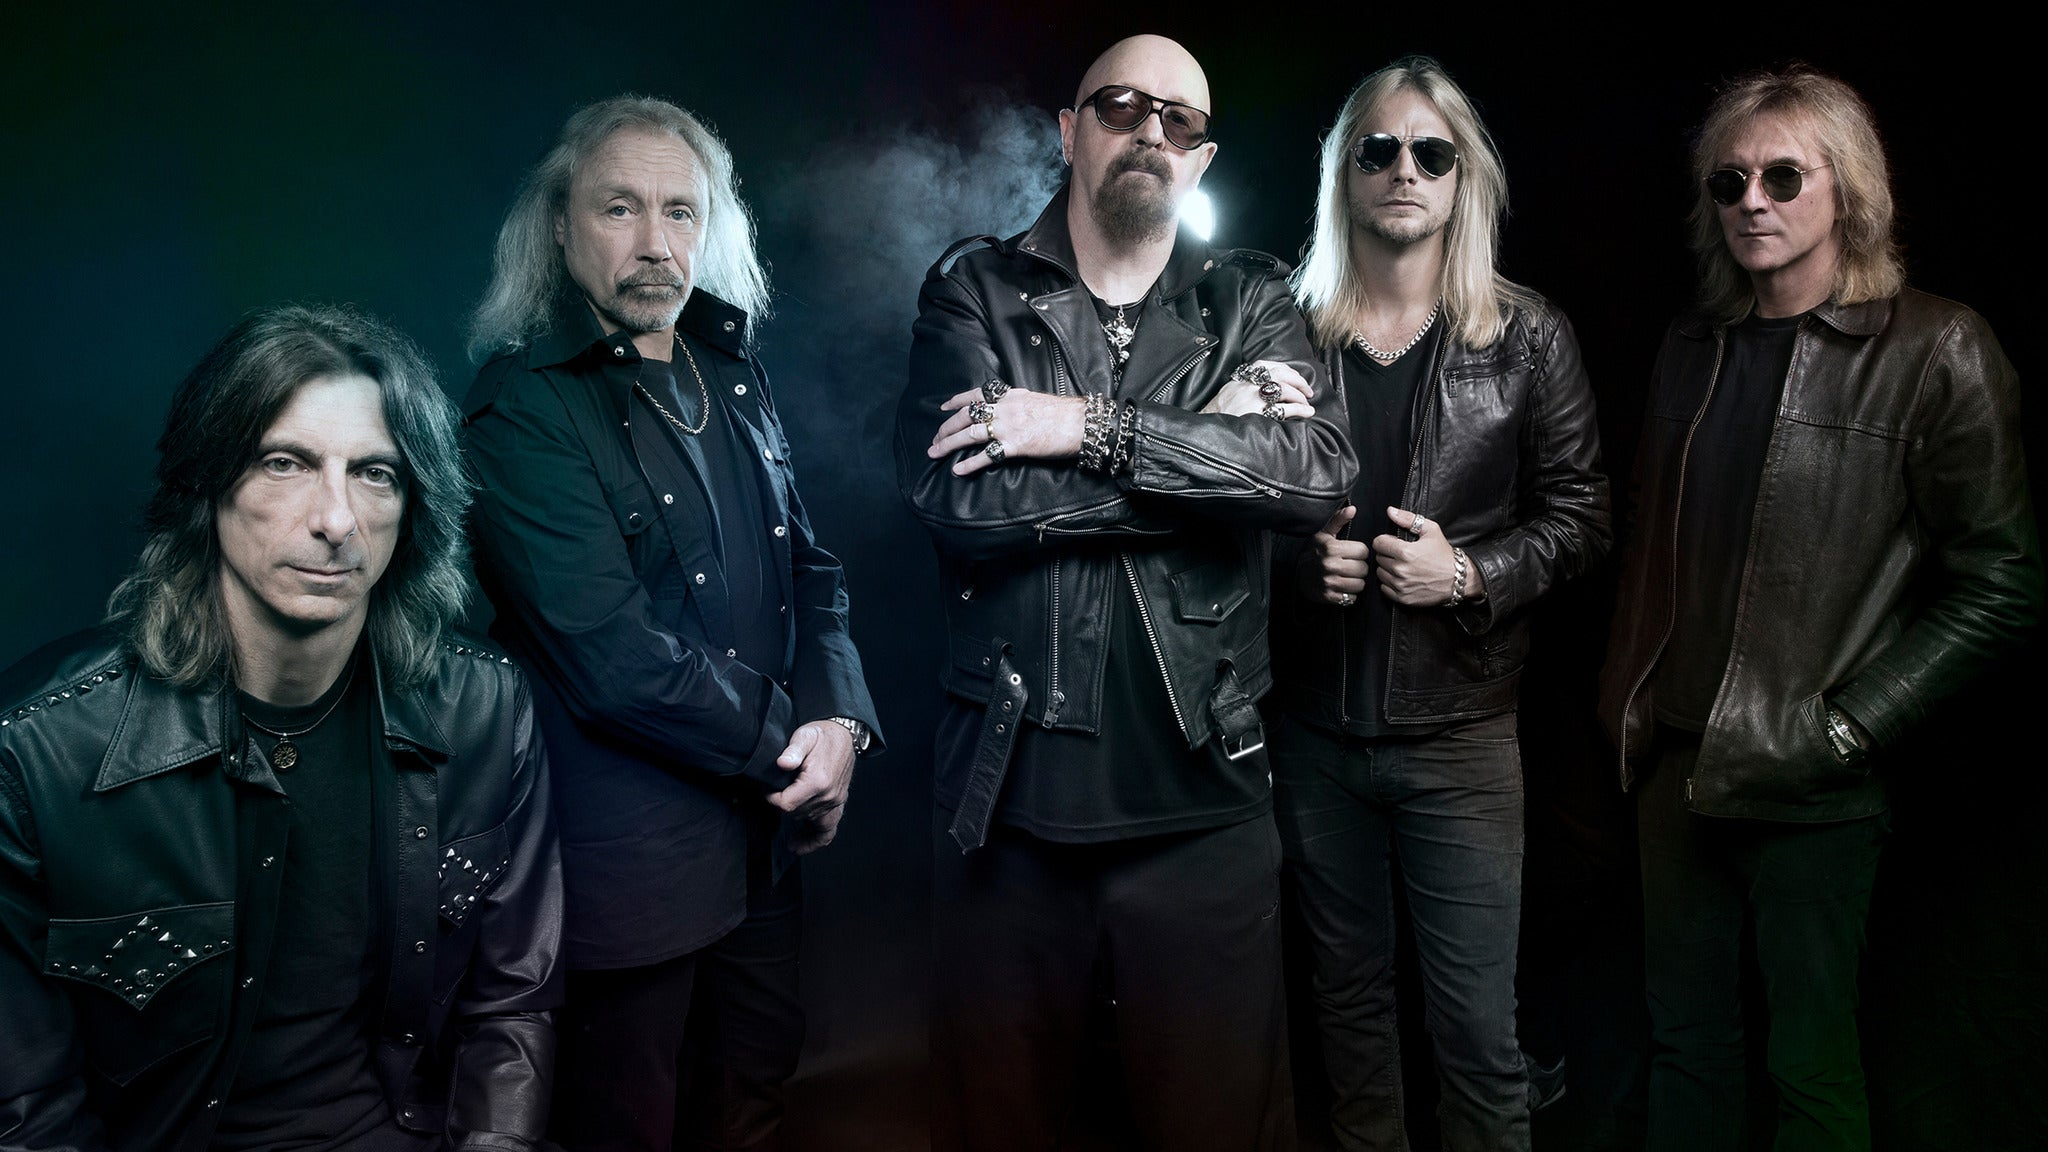 Judas Priest at The Grand Theater at Foxwoods Resort Casino - Mashantucket, CT 06355